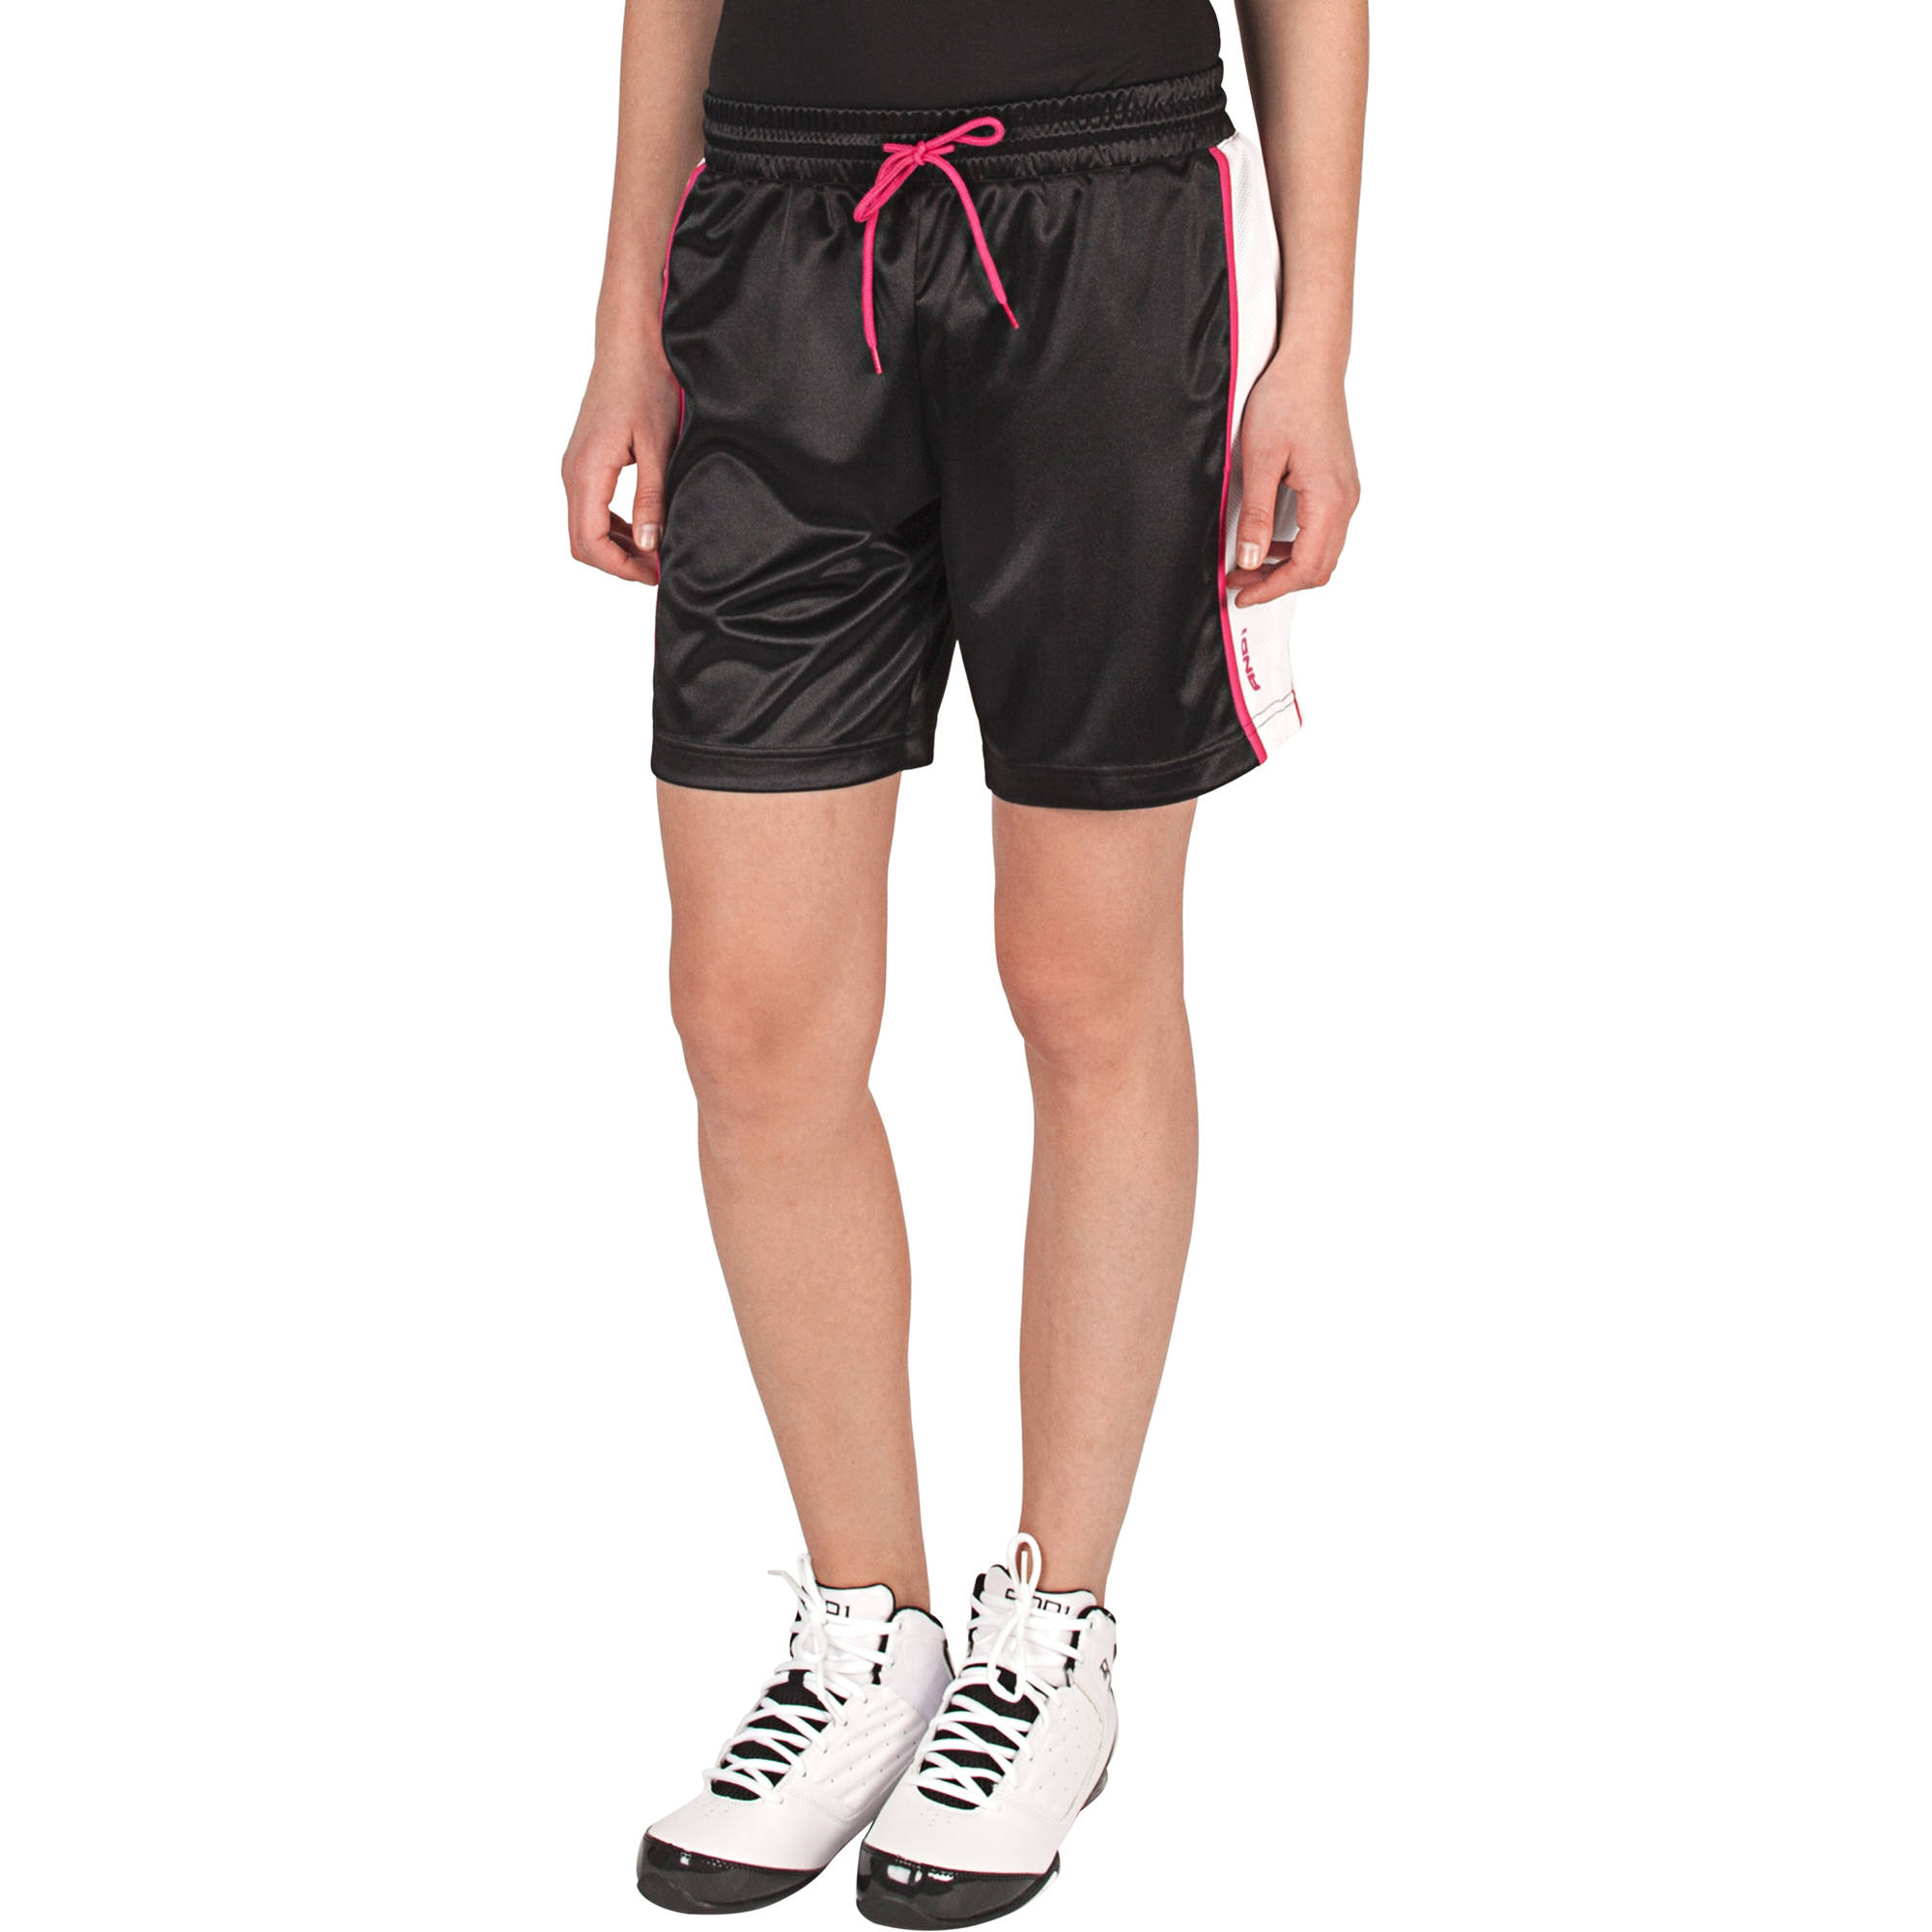 AND1 Women's Plus-Size Dazzle Game Short